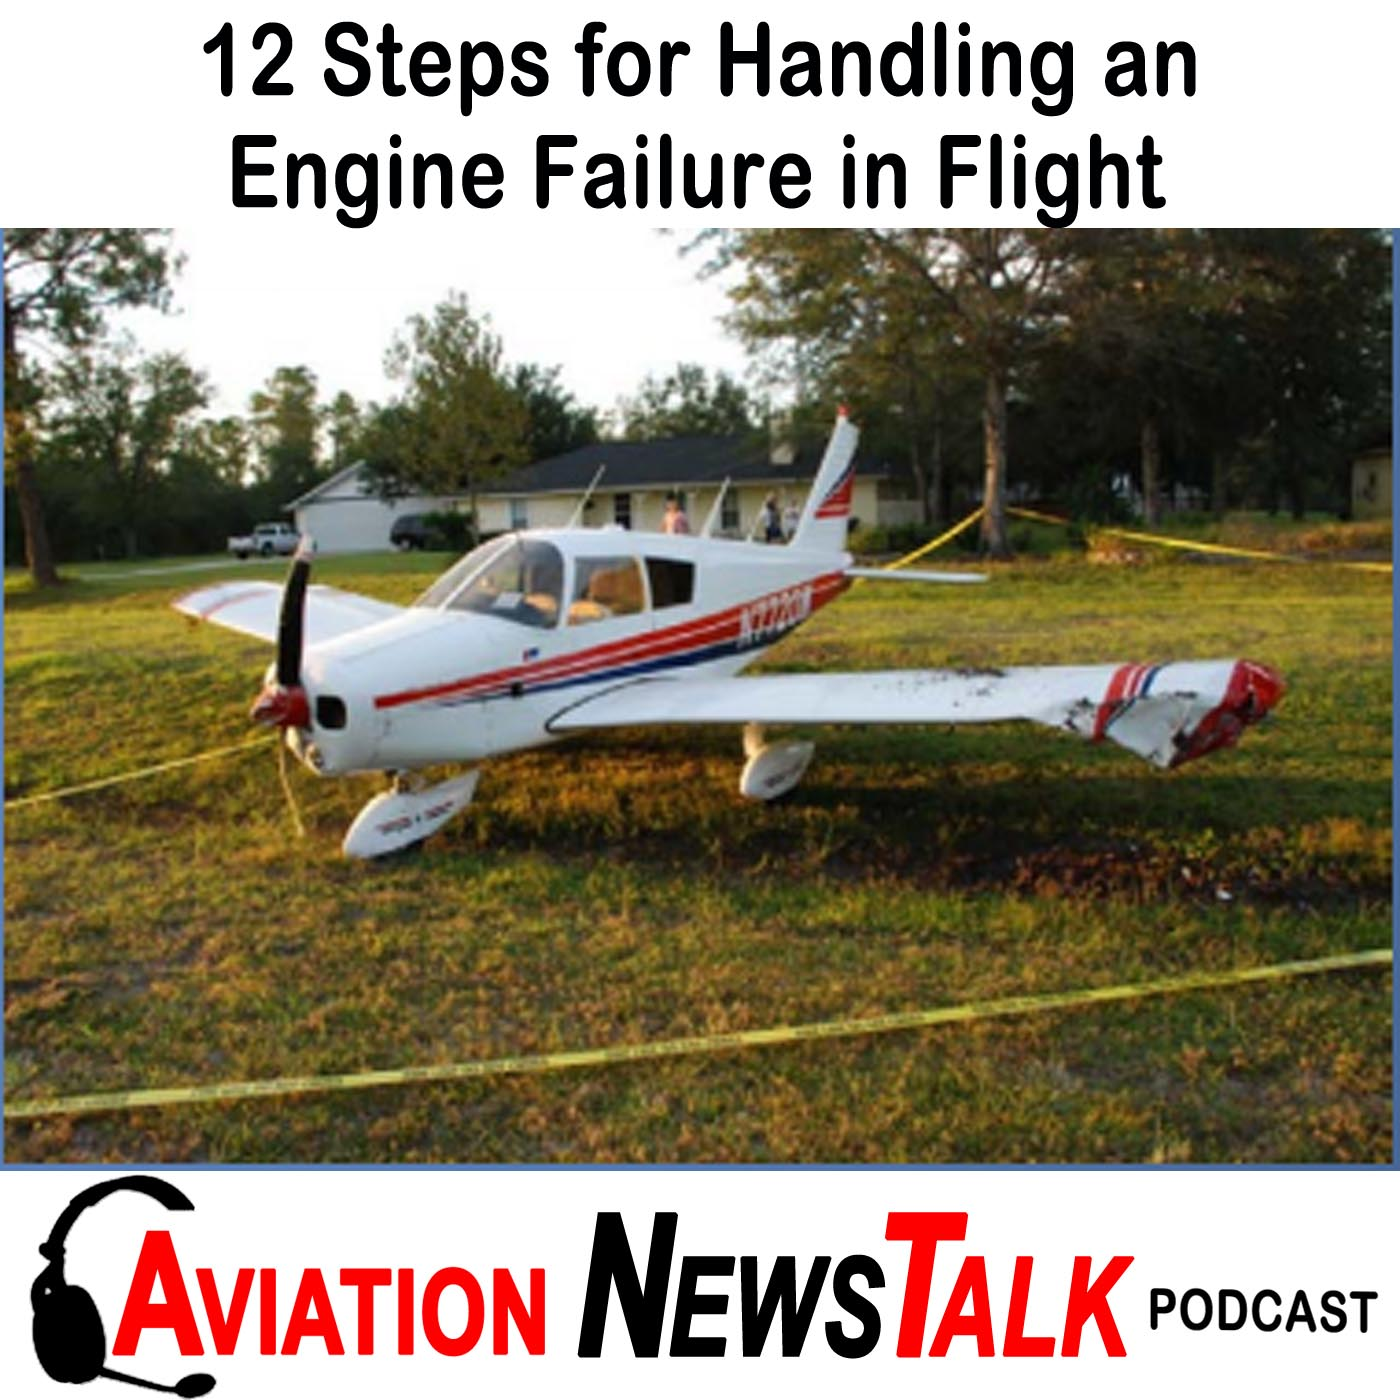 Aviation News Talk podcast | Podbay